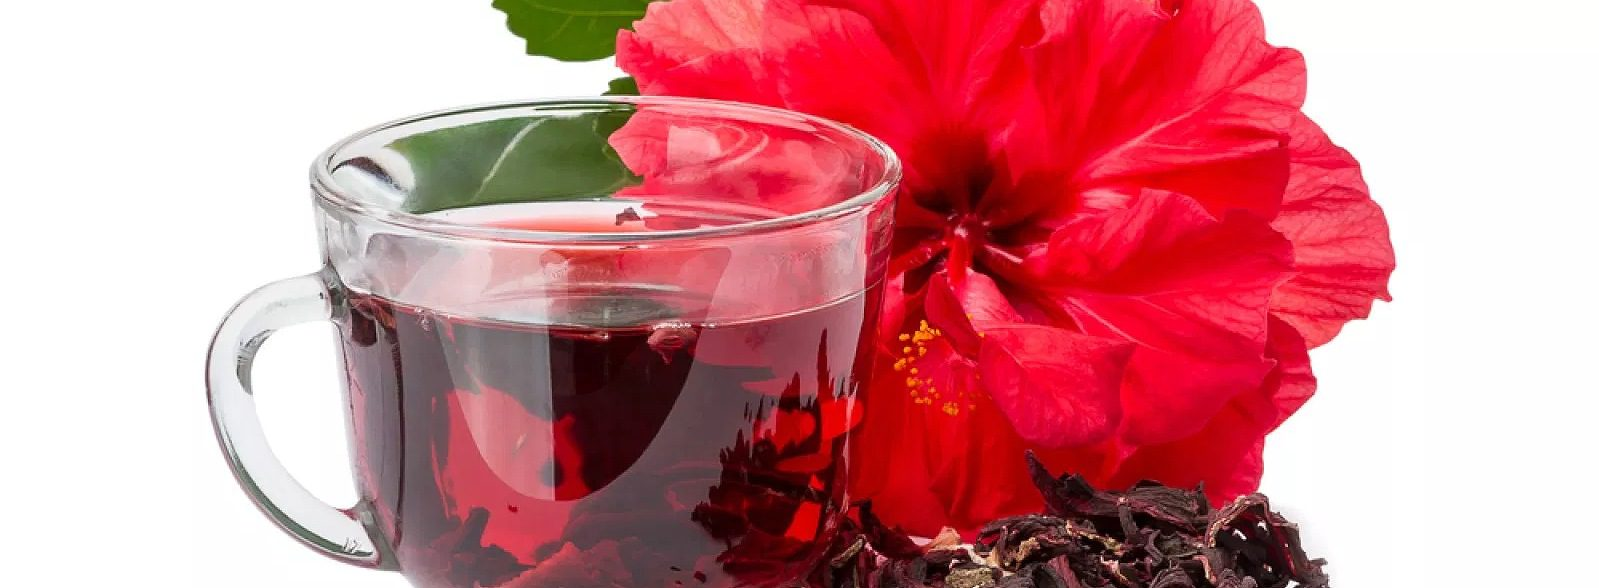 Zobo Drink: Six Health Benefits Of Hibiscus Leaves You Should Take Advantage Of